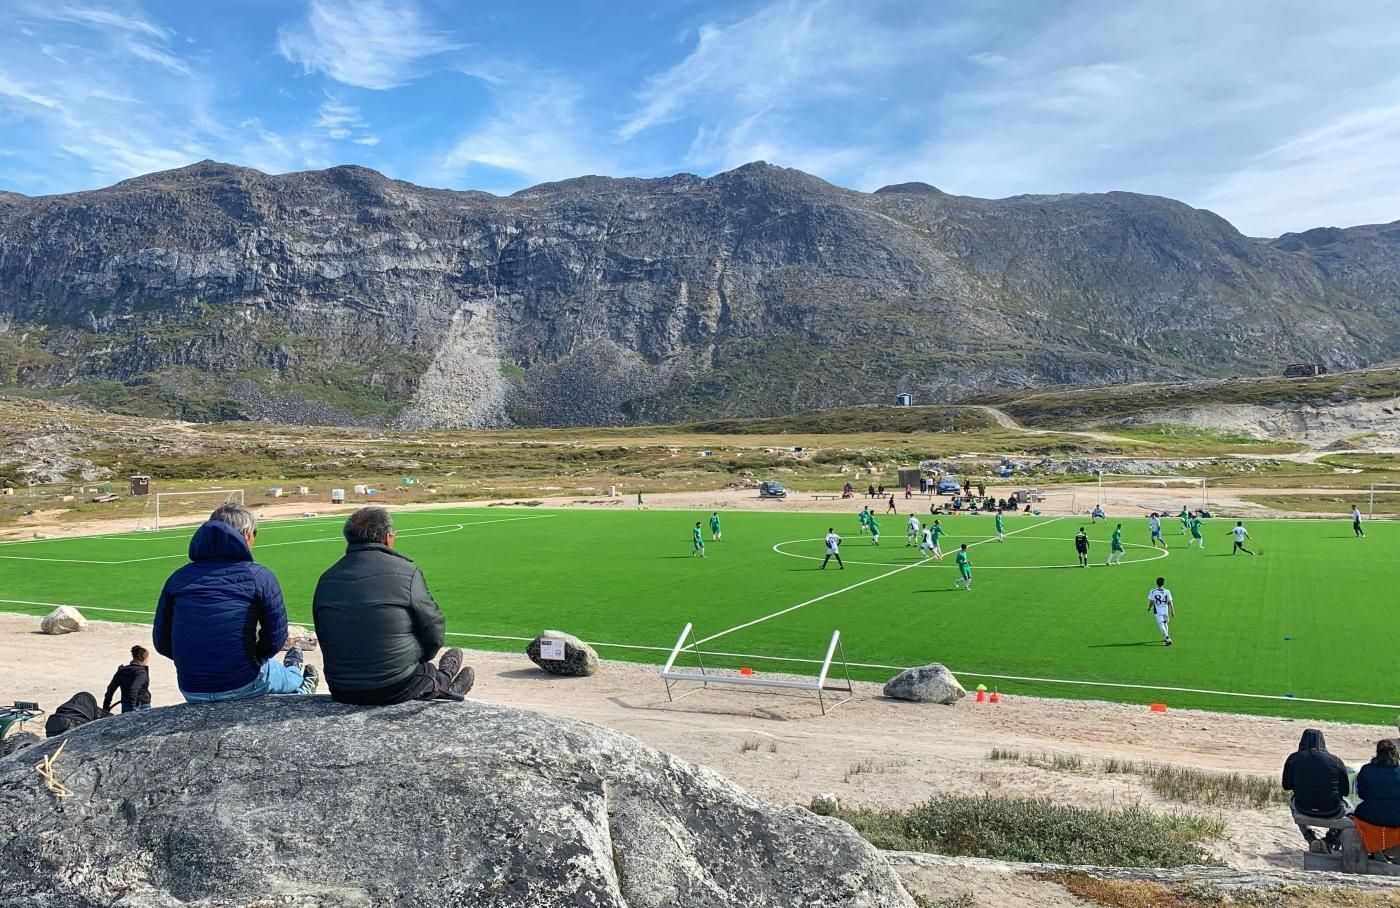 Two people sitting on a rock watching a soccer game. Photo by Espen Andersen, Visit Greenland